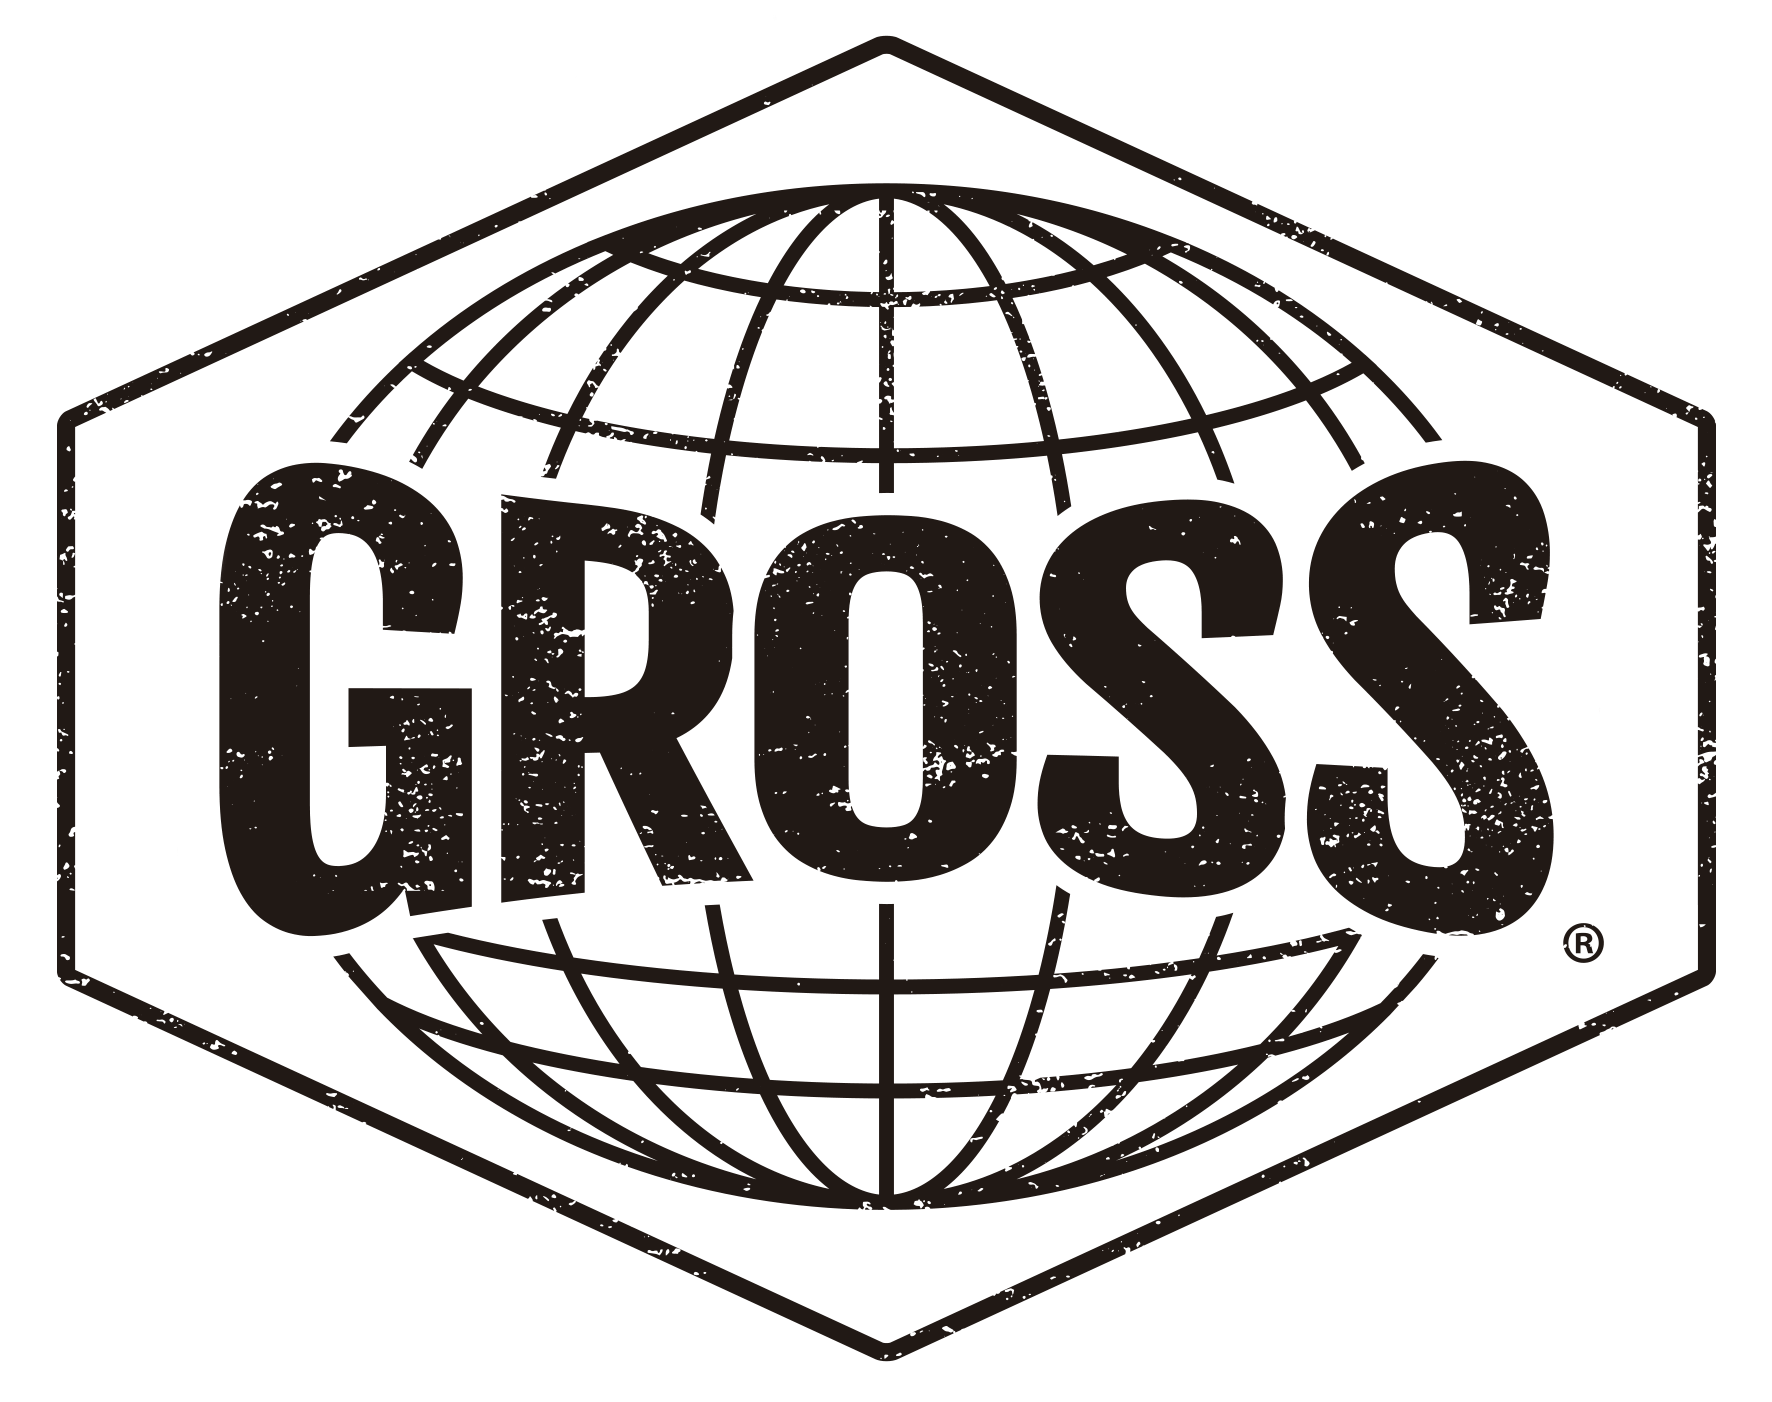 Gross Brewery Brewgross